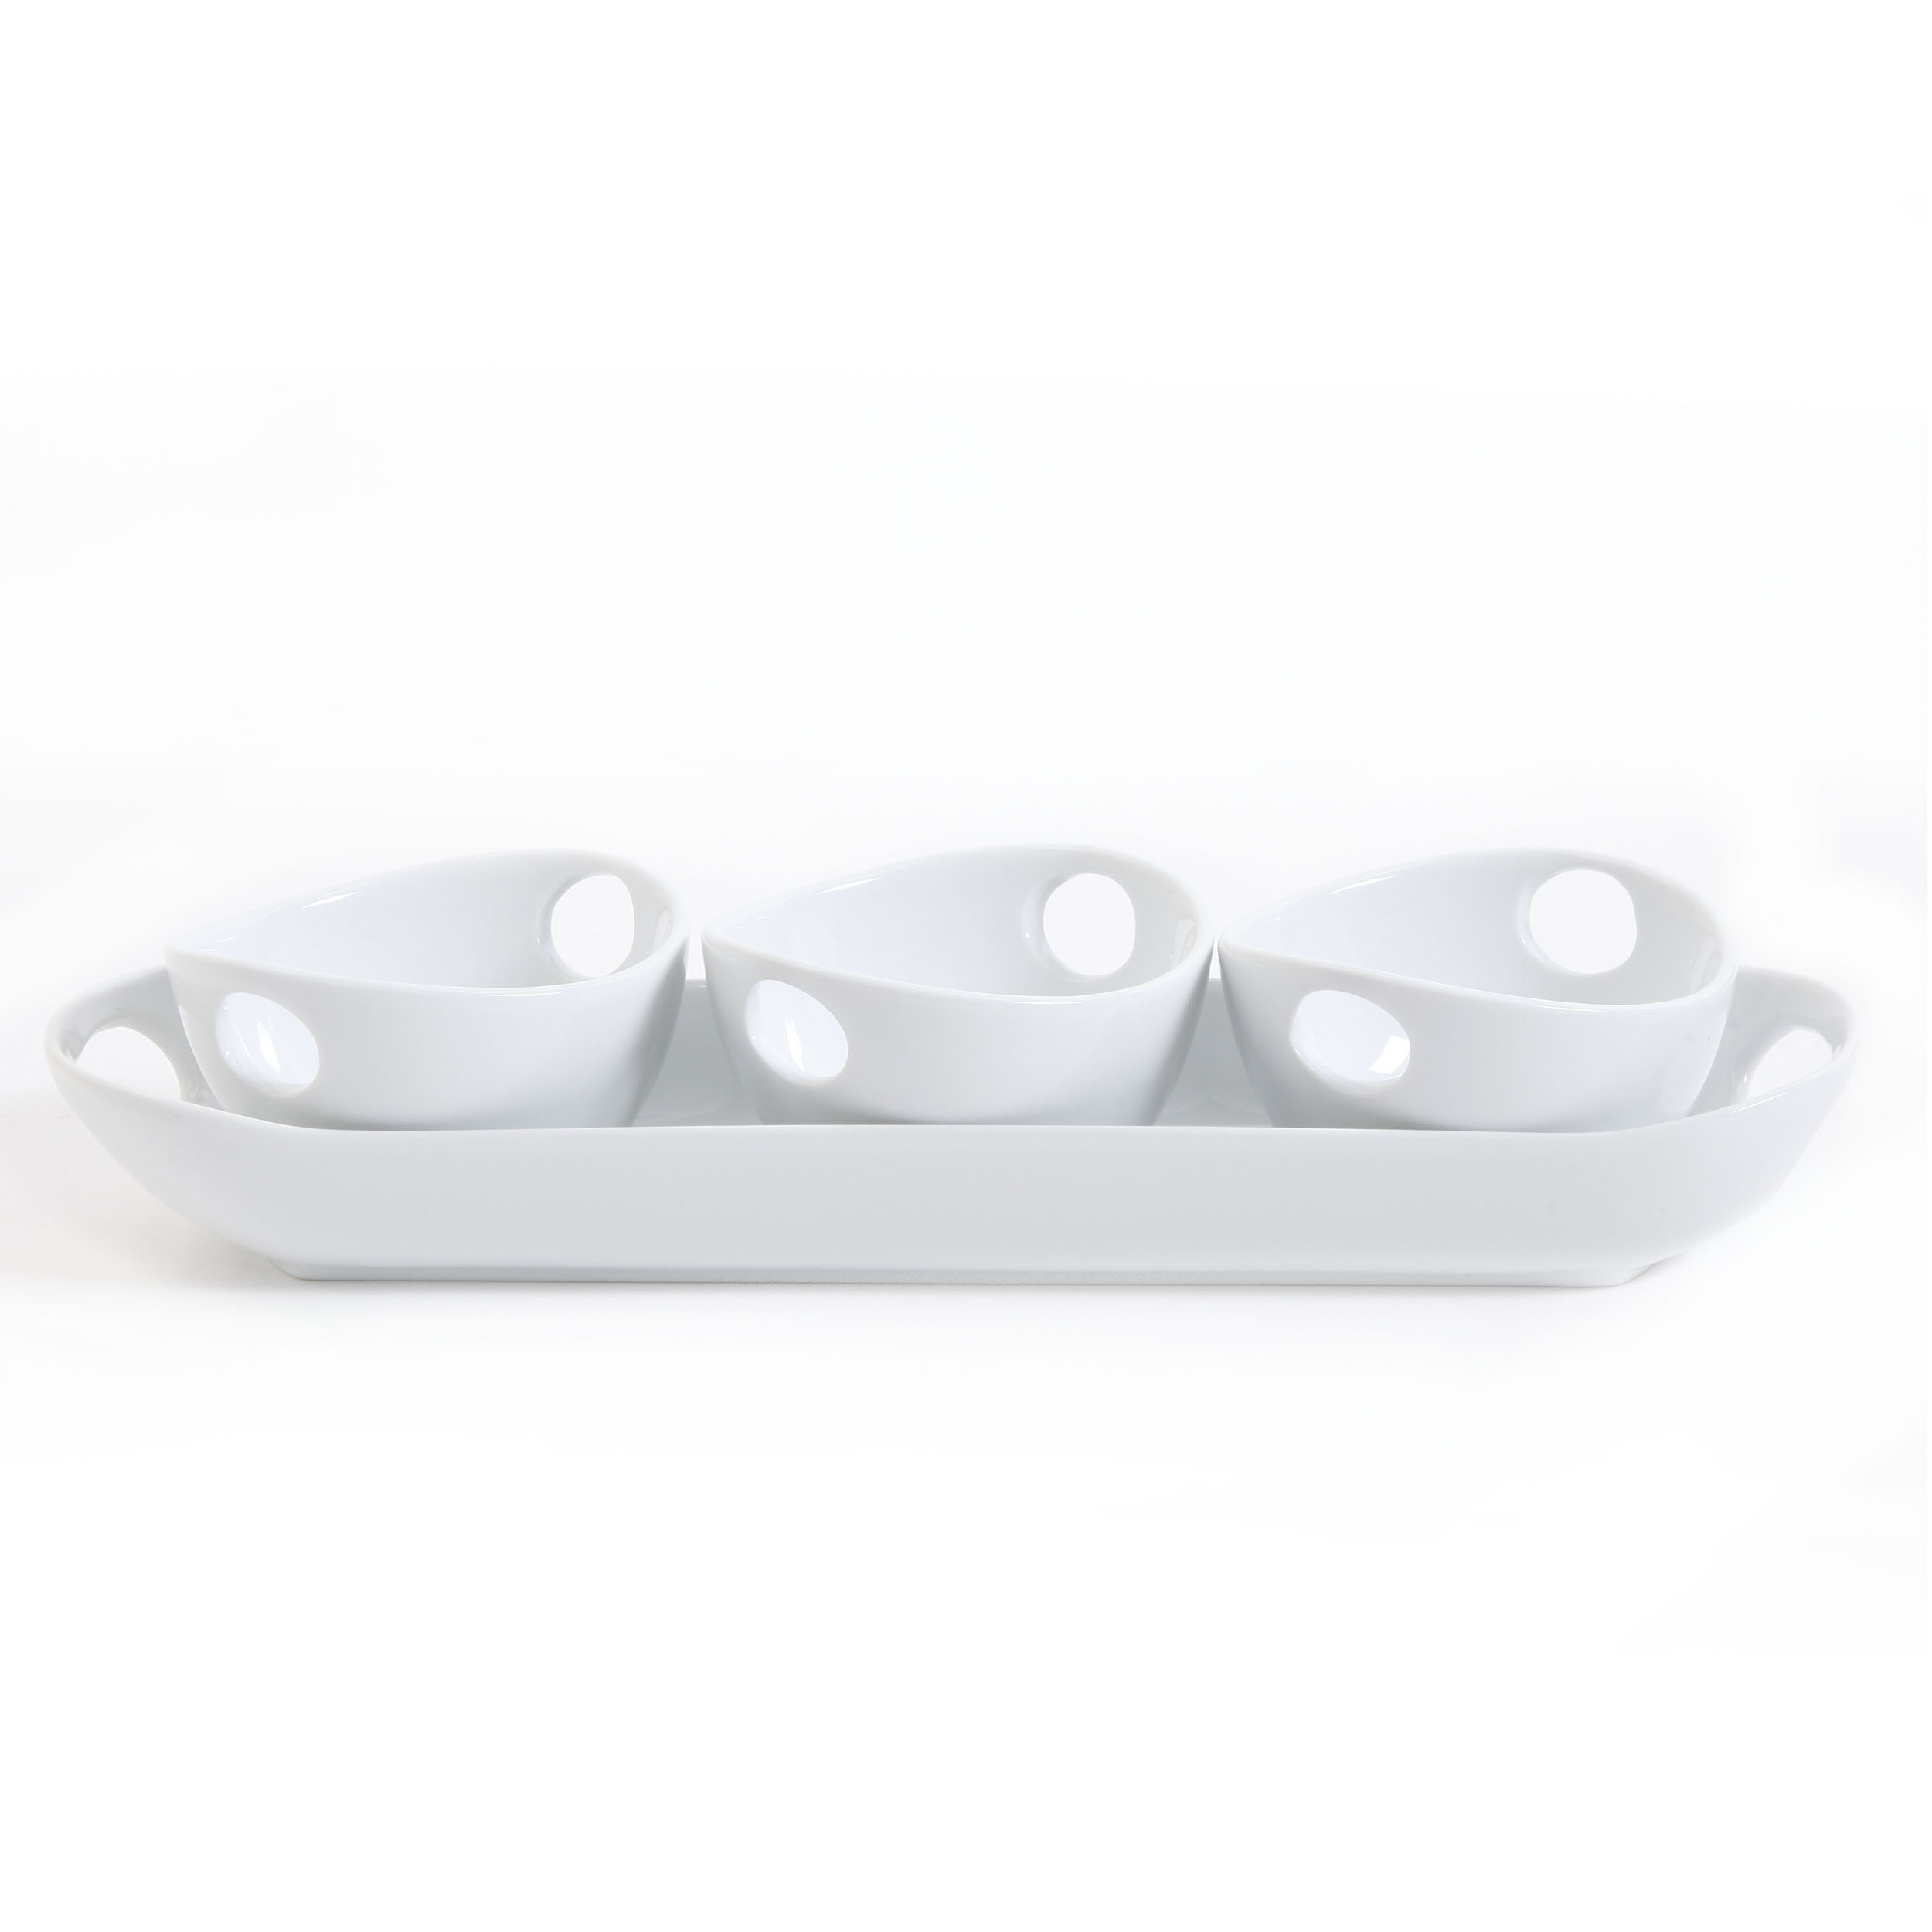 Gibson Elite Ceramic Dining Serving Dish Set With Tray (4 Pieces), White